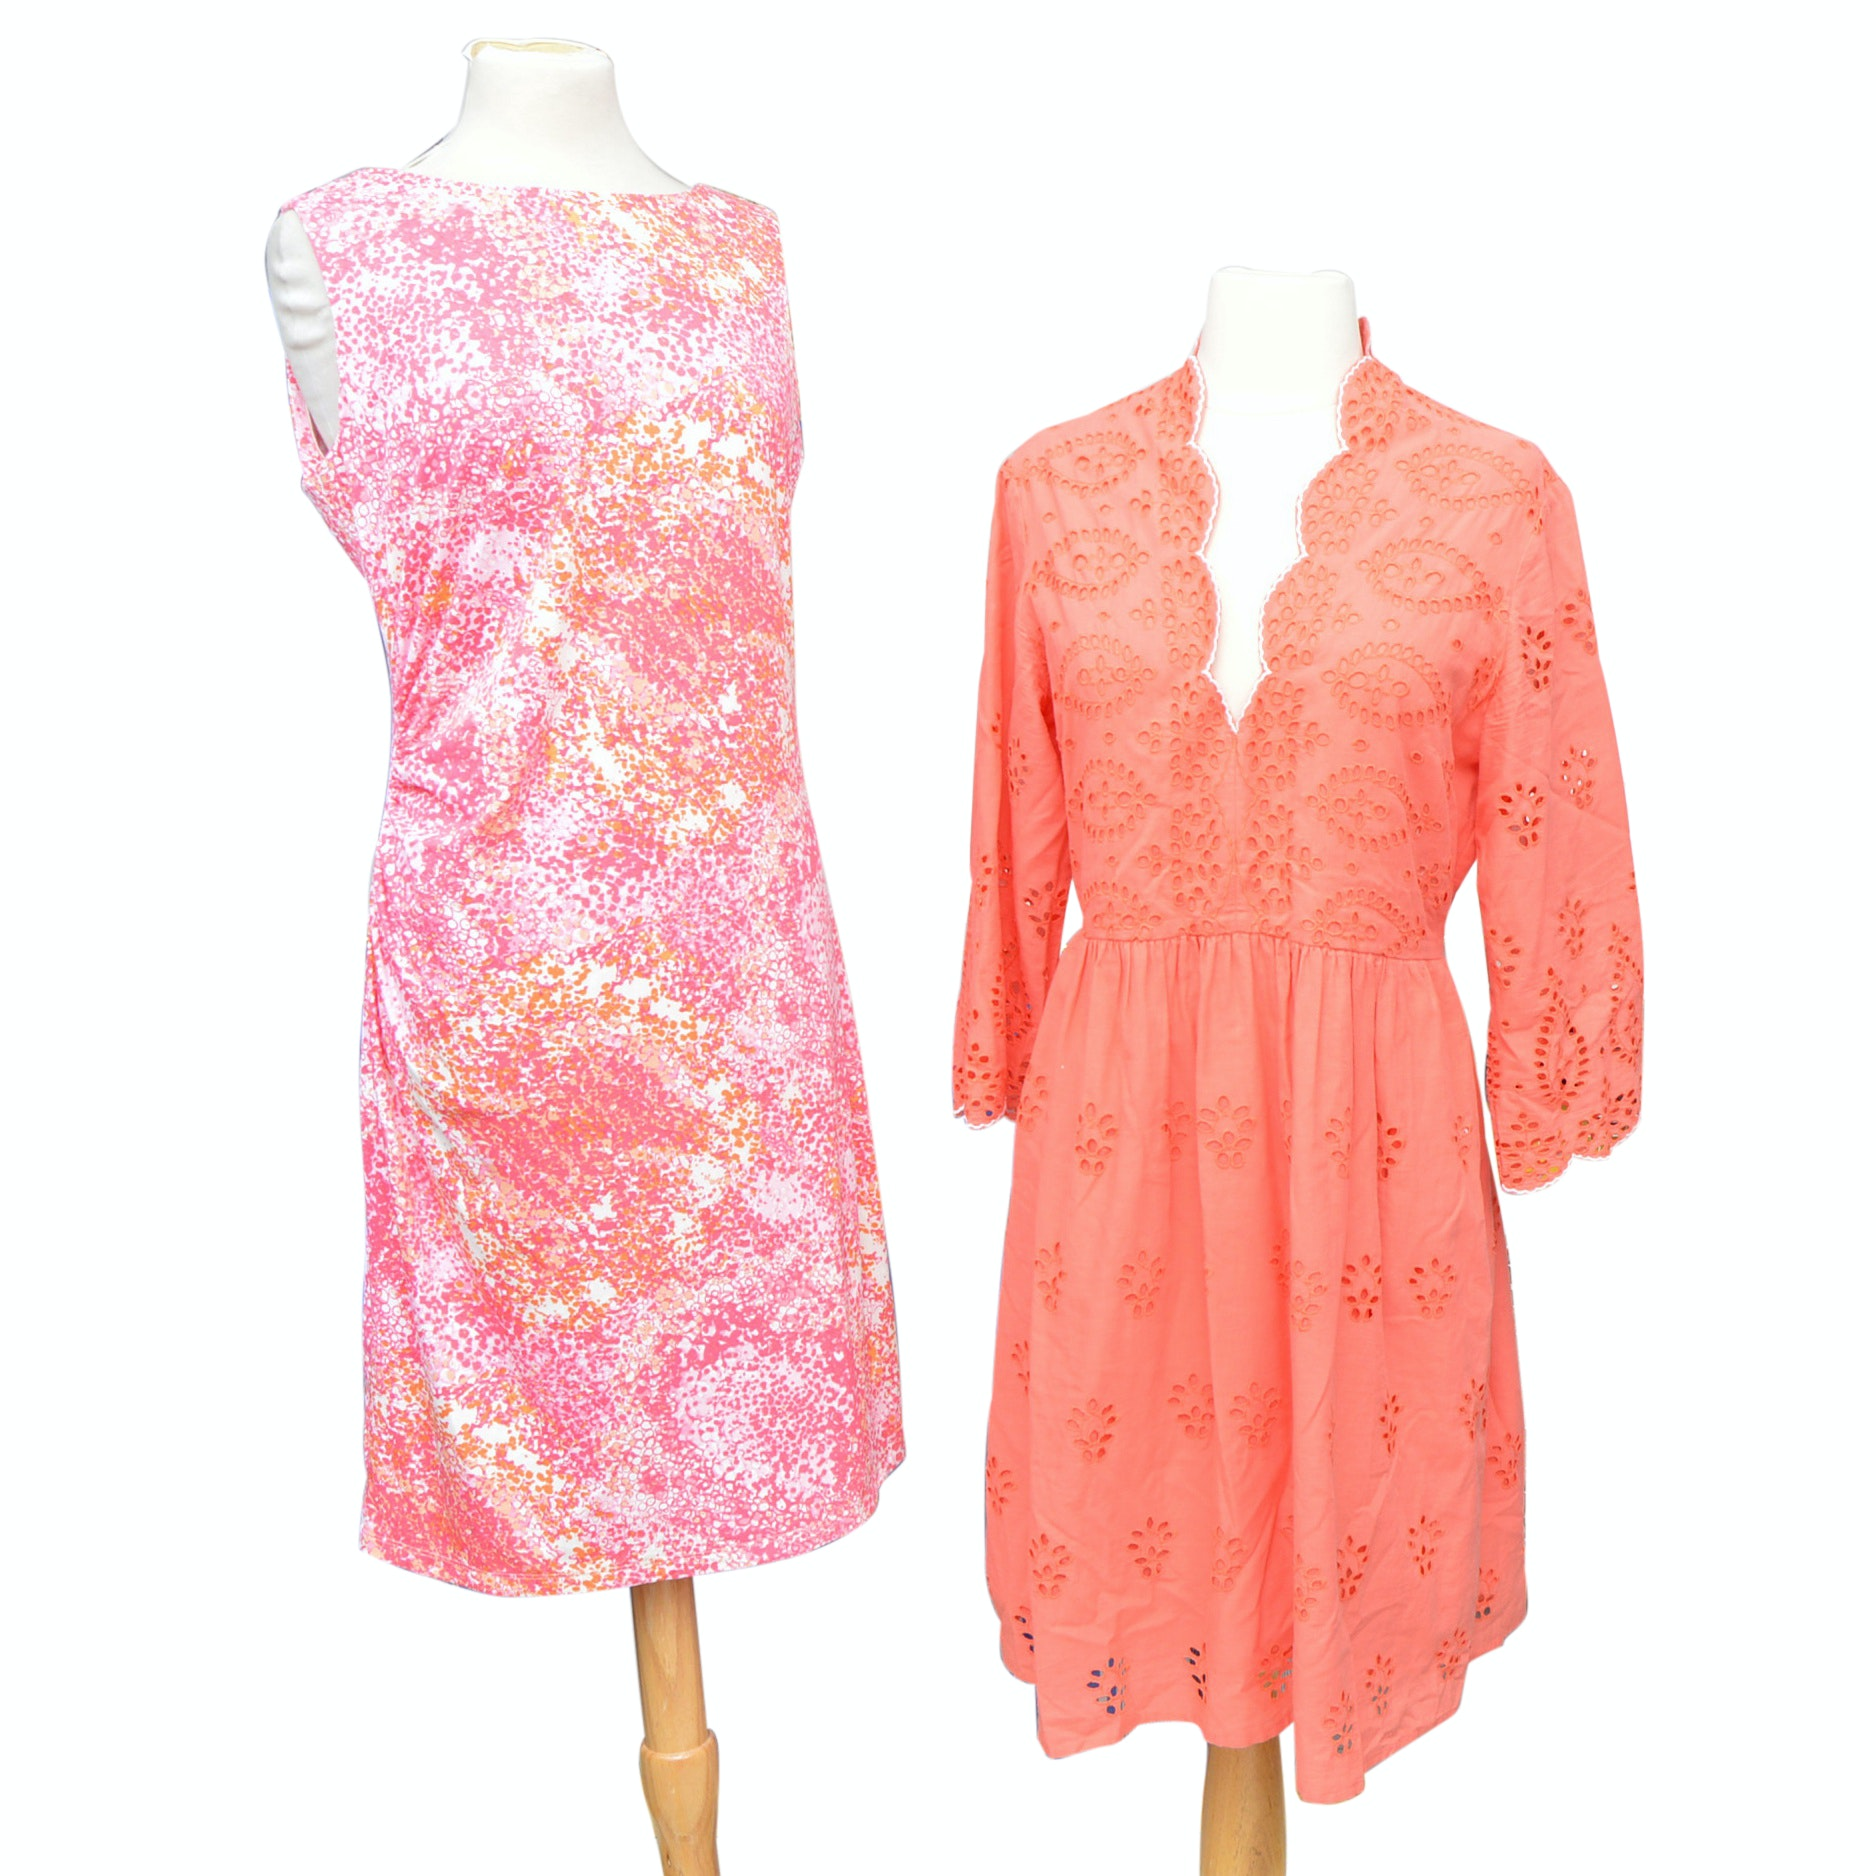 Women's Designer Summer Dresses with New-with-Tags J McLaughlin